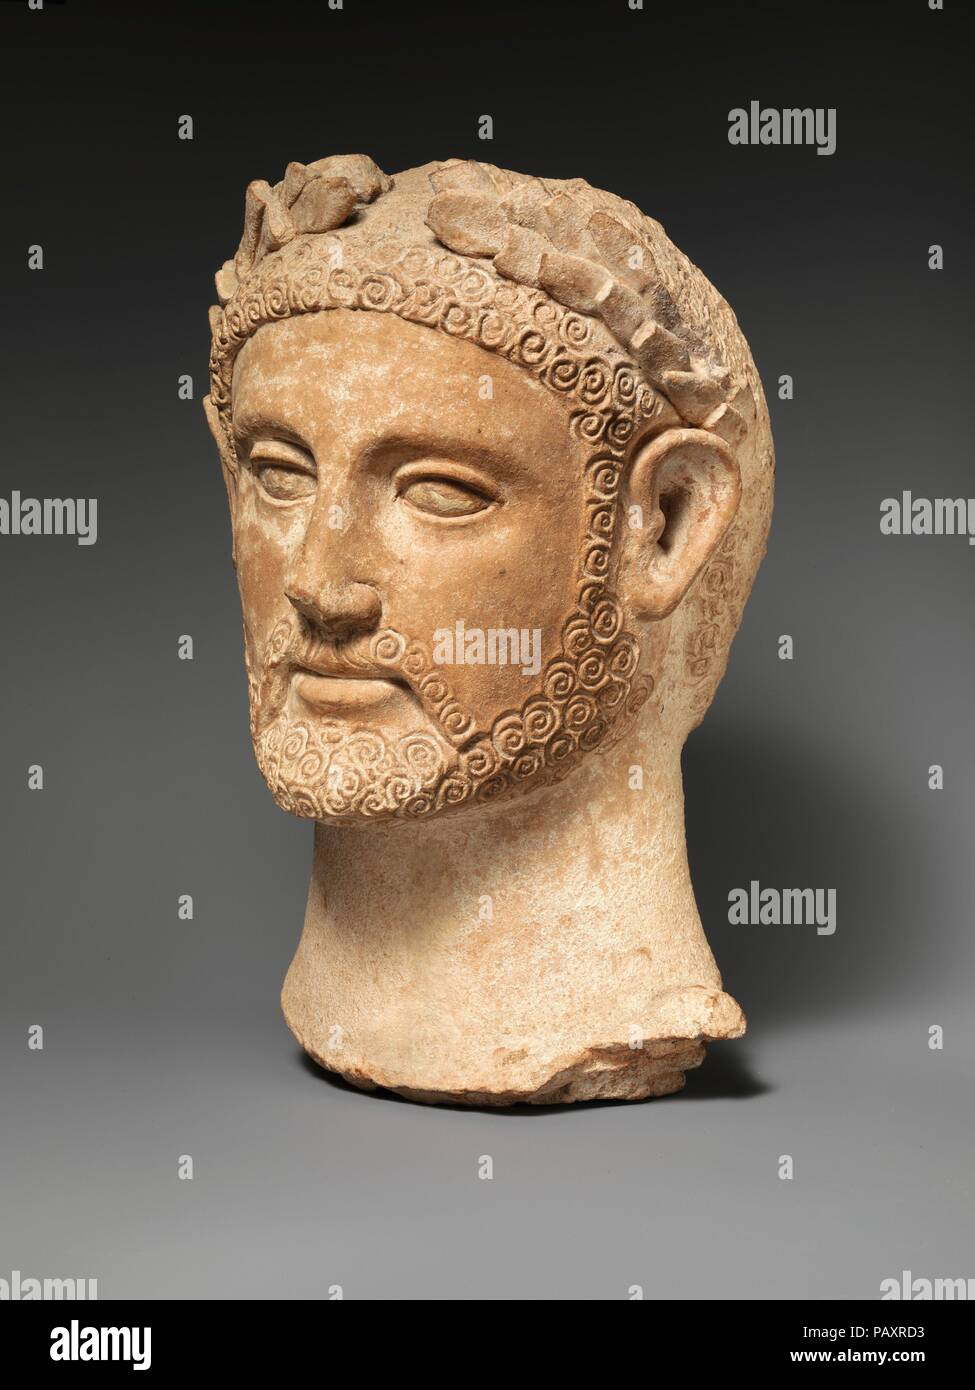 Terracotta head of a man wearing a wreath. Culture: Cypriot. Dimensions: H. 12 1/2 in. (31.8 cm). Date: ca. 400-310 B.C..  Another head made in the same mold is now in the Pierides Museum, Larnaka. It was found in a sanctuary at Pomos in northwestern Cyprus. Museum: Metropolitan Museum of Art, New York, USA. Stock Photo